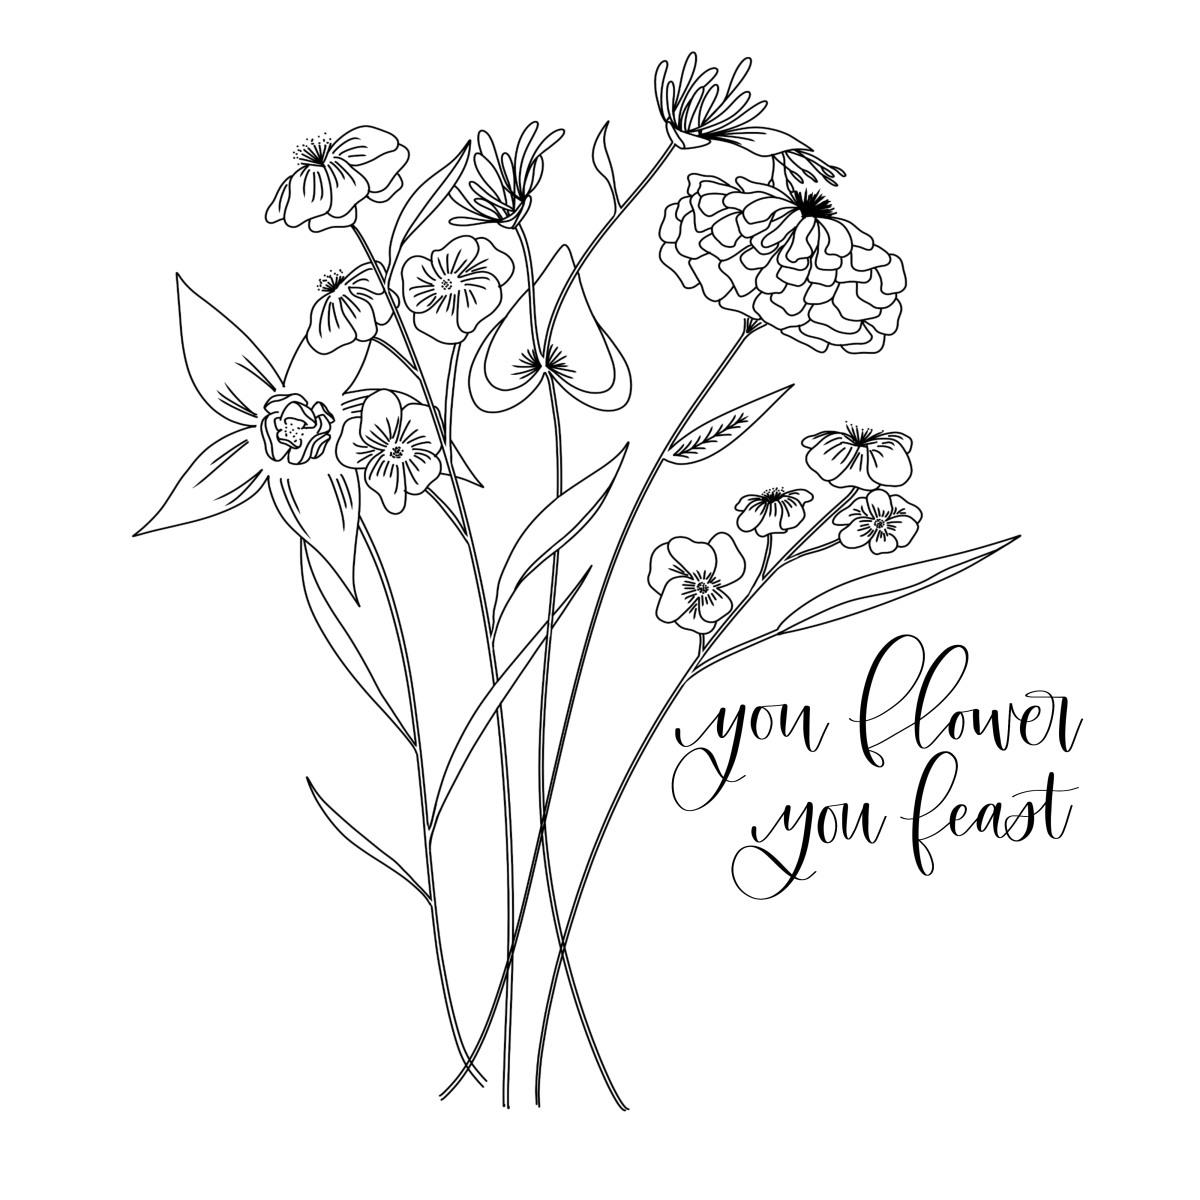 1200x1200 Fresh Start Harry Styles Wallpaper, Floral Drawing And Doodles